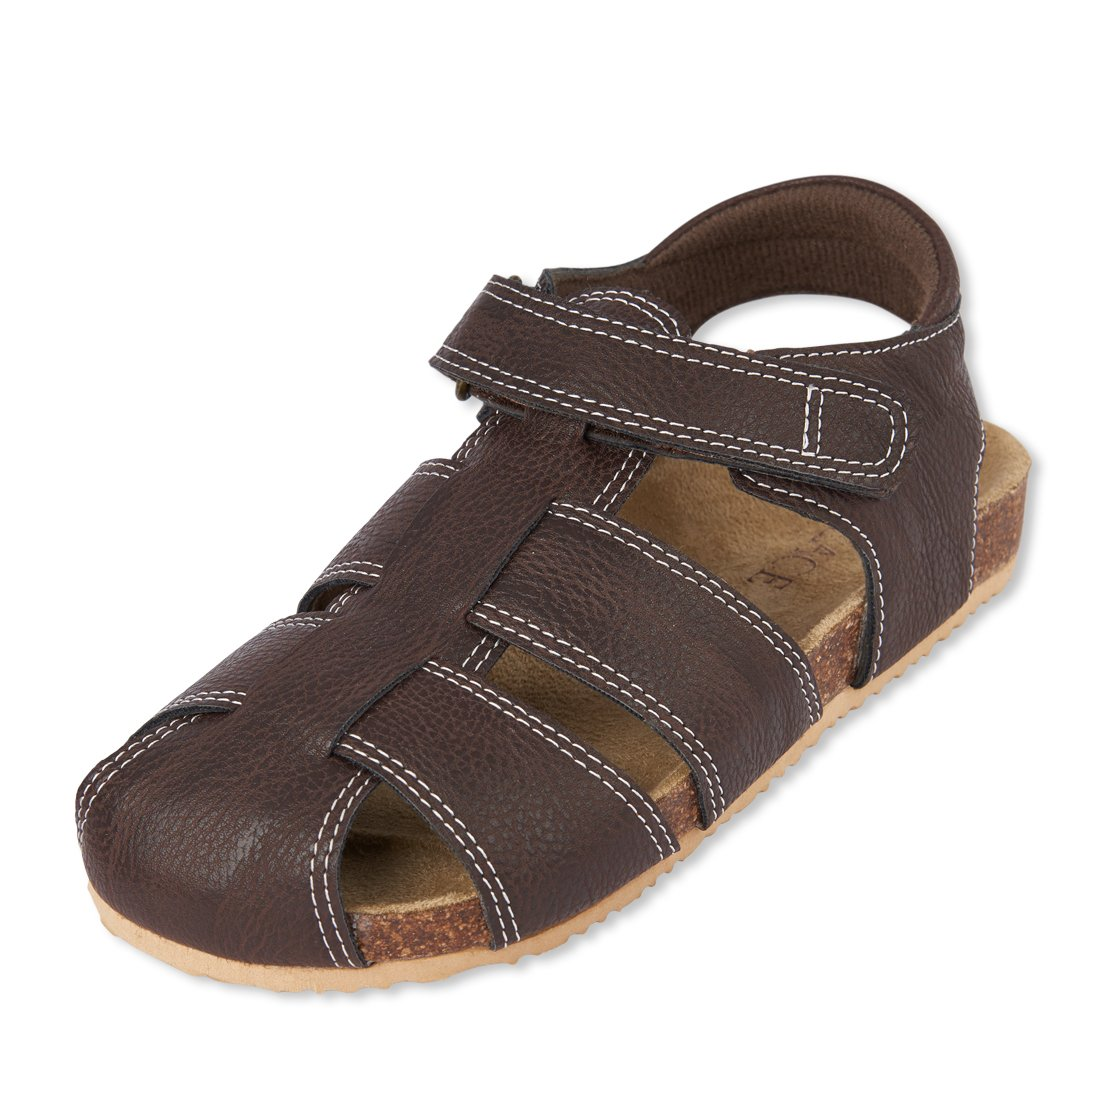 The Children's Place Boys' BB Fisherman SCO Flat Sandal, Brown, Youth 11 Medium US Big Kid by The Children's Place (Image #1)